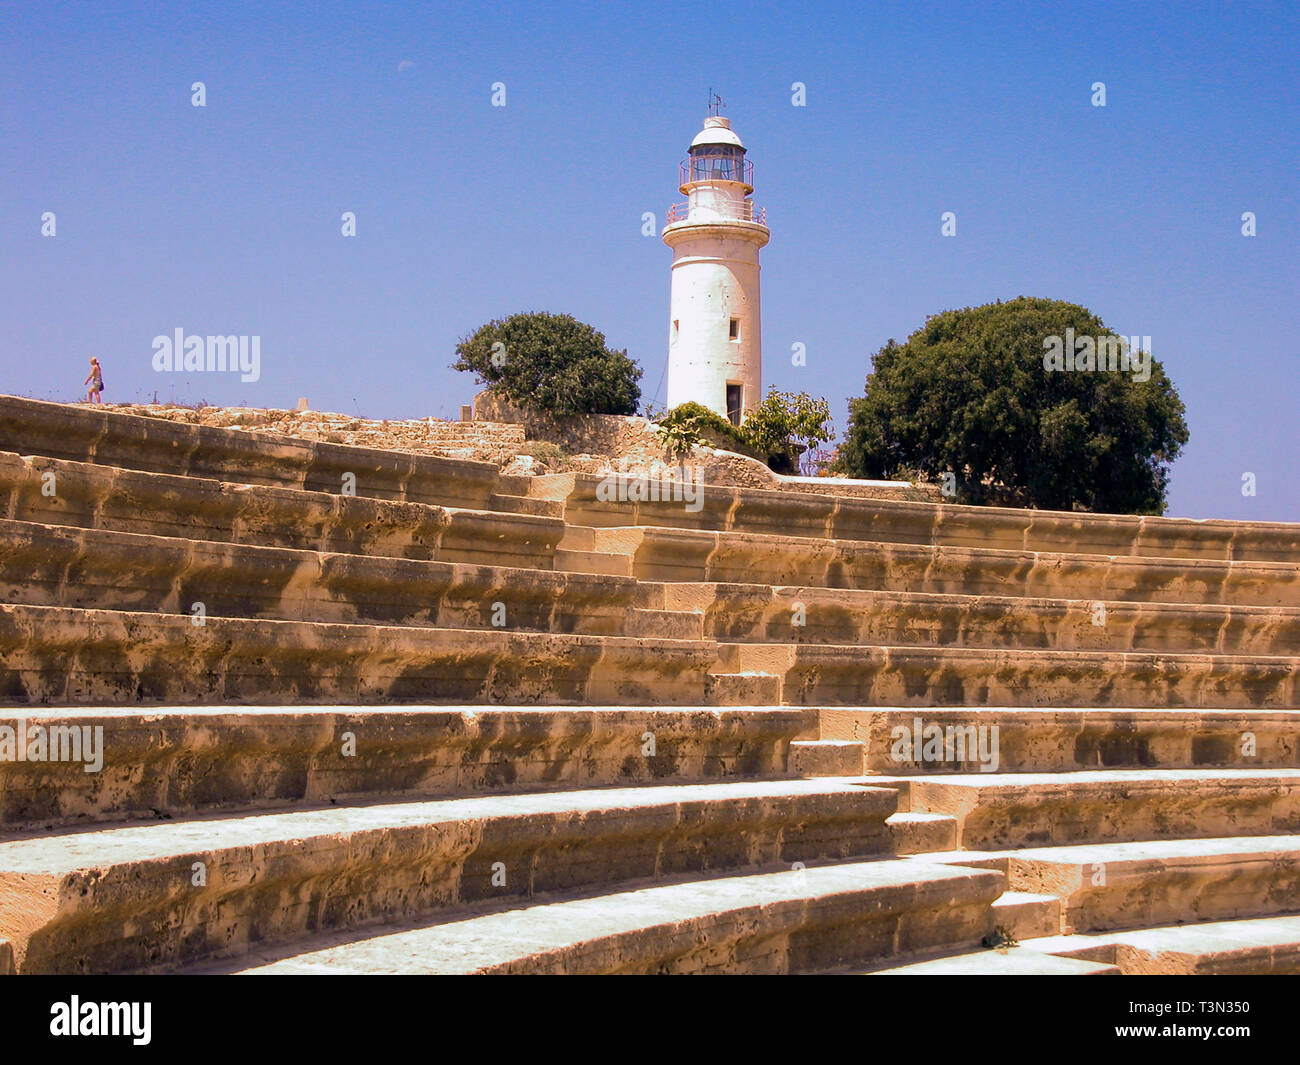 Roman odeion, restored 1970's, and lighthouse, Kato Pafos, Cyprus Stock Photo